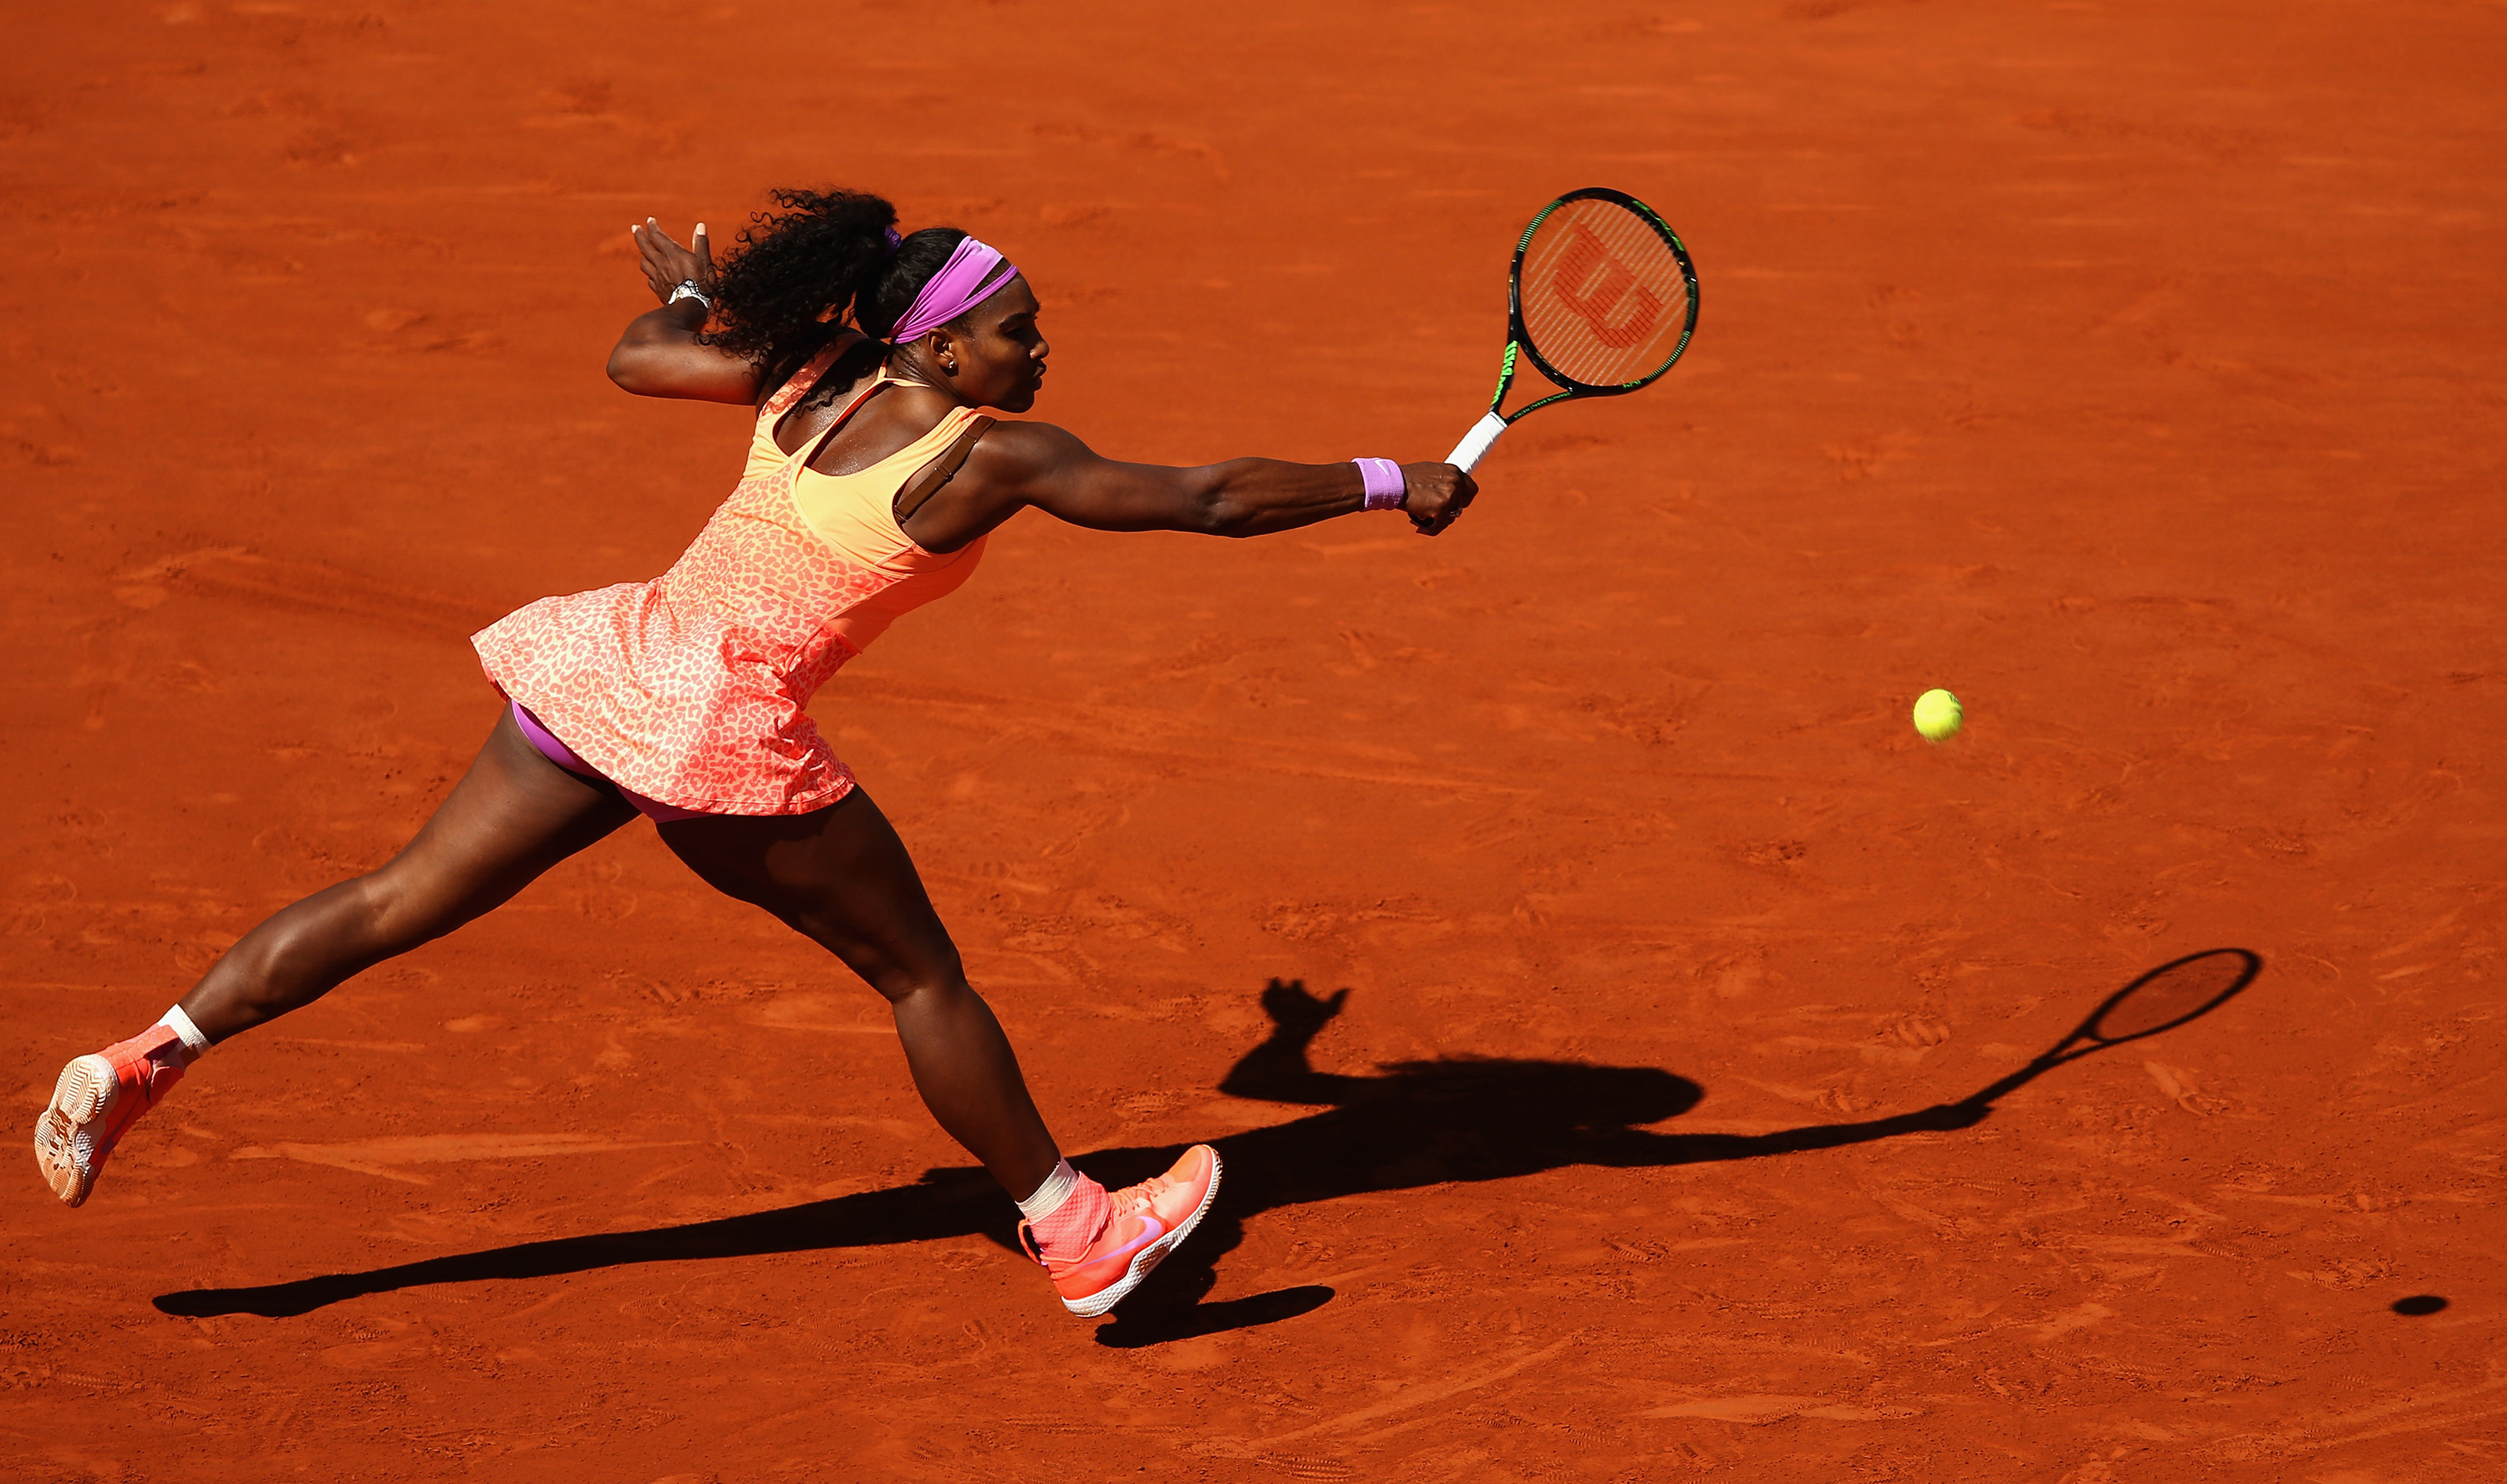 Williams' French Open victory was her 20th major win, four behind the women's all-time career record.